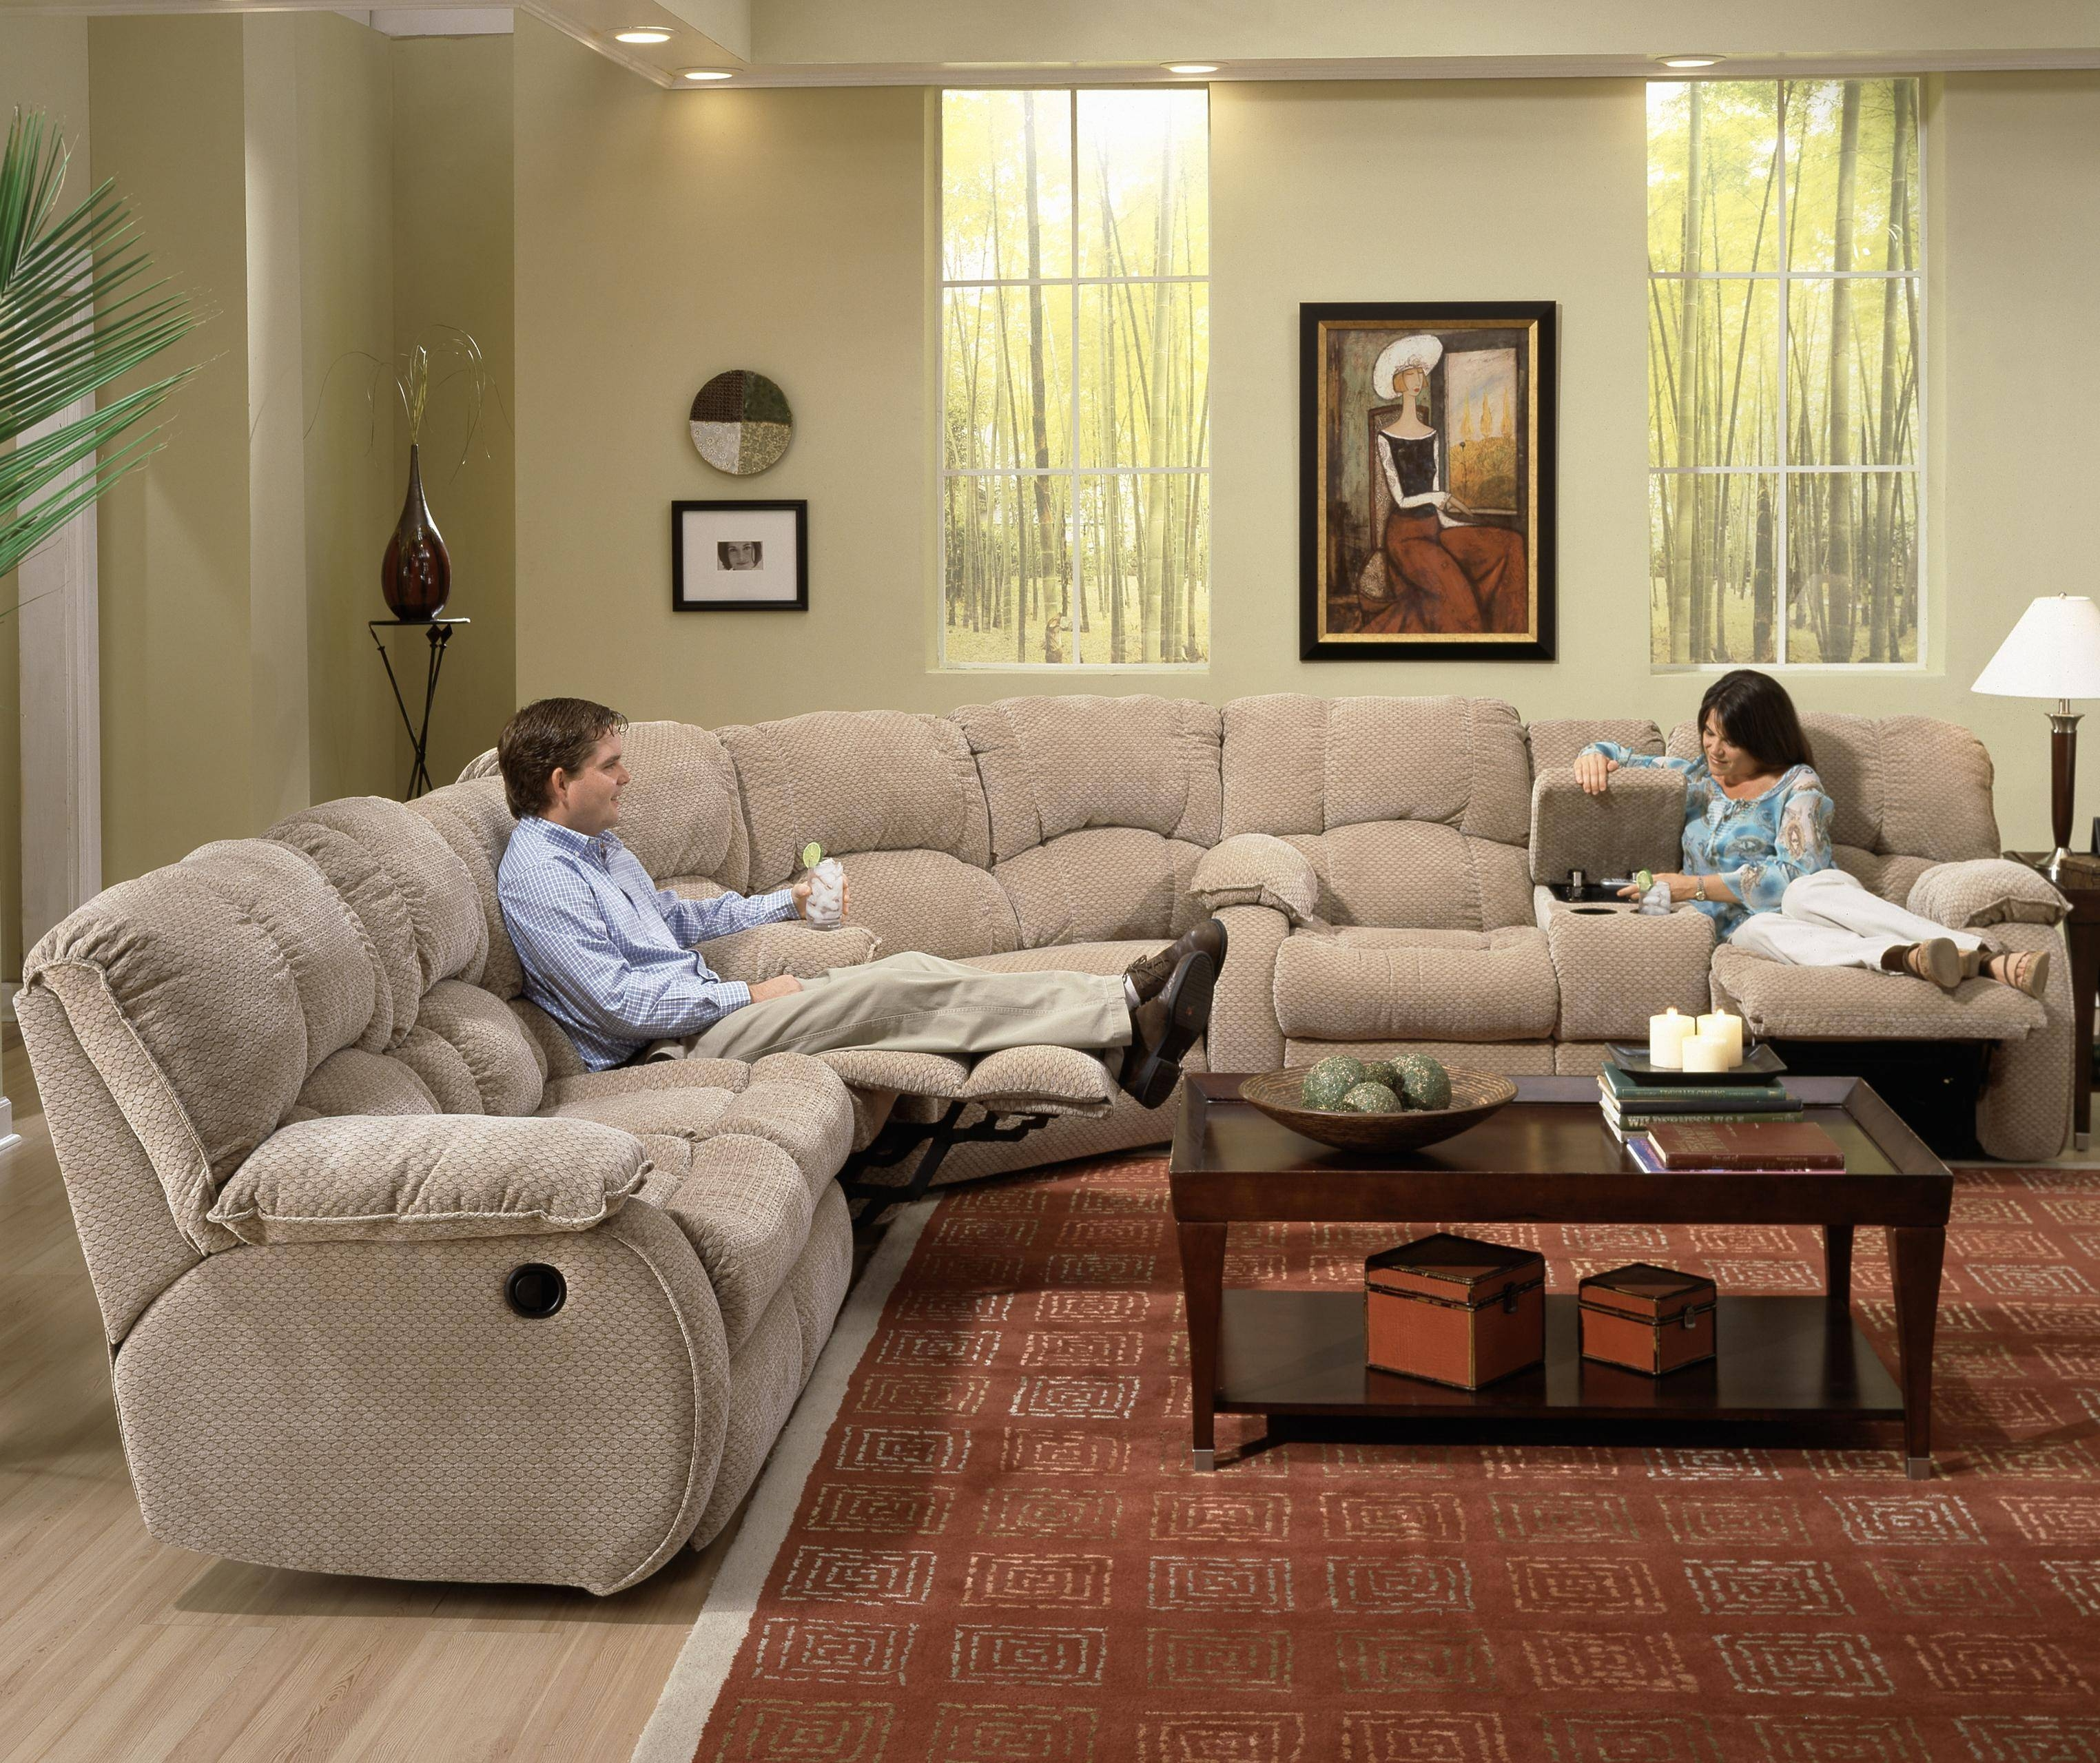 Furniture: Incredible Style Sectional Reclining Sofas For Your in Recliner Sectional Sofas (Image 12 of 30)